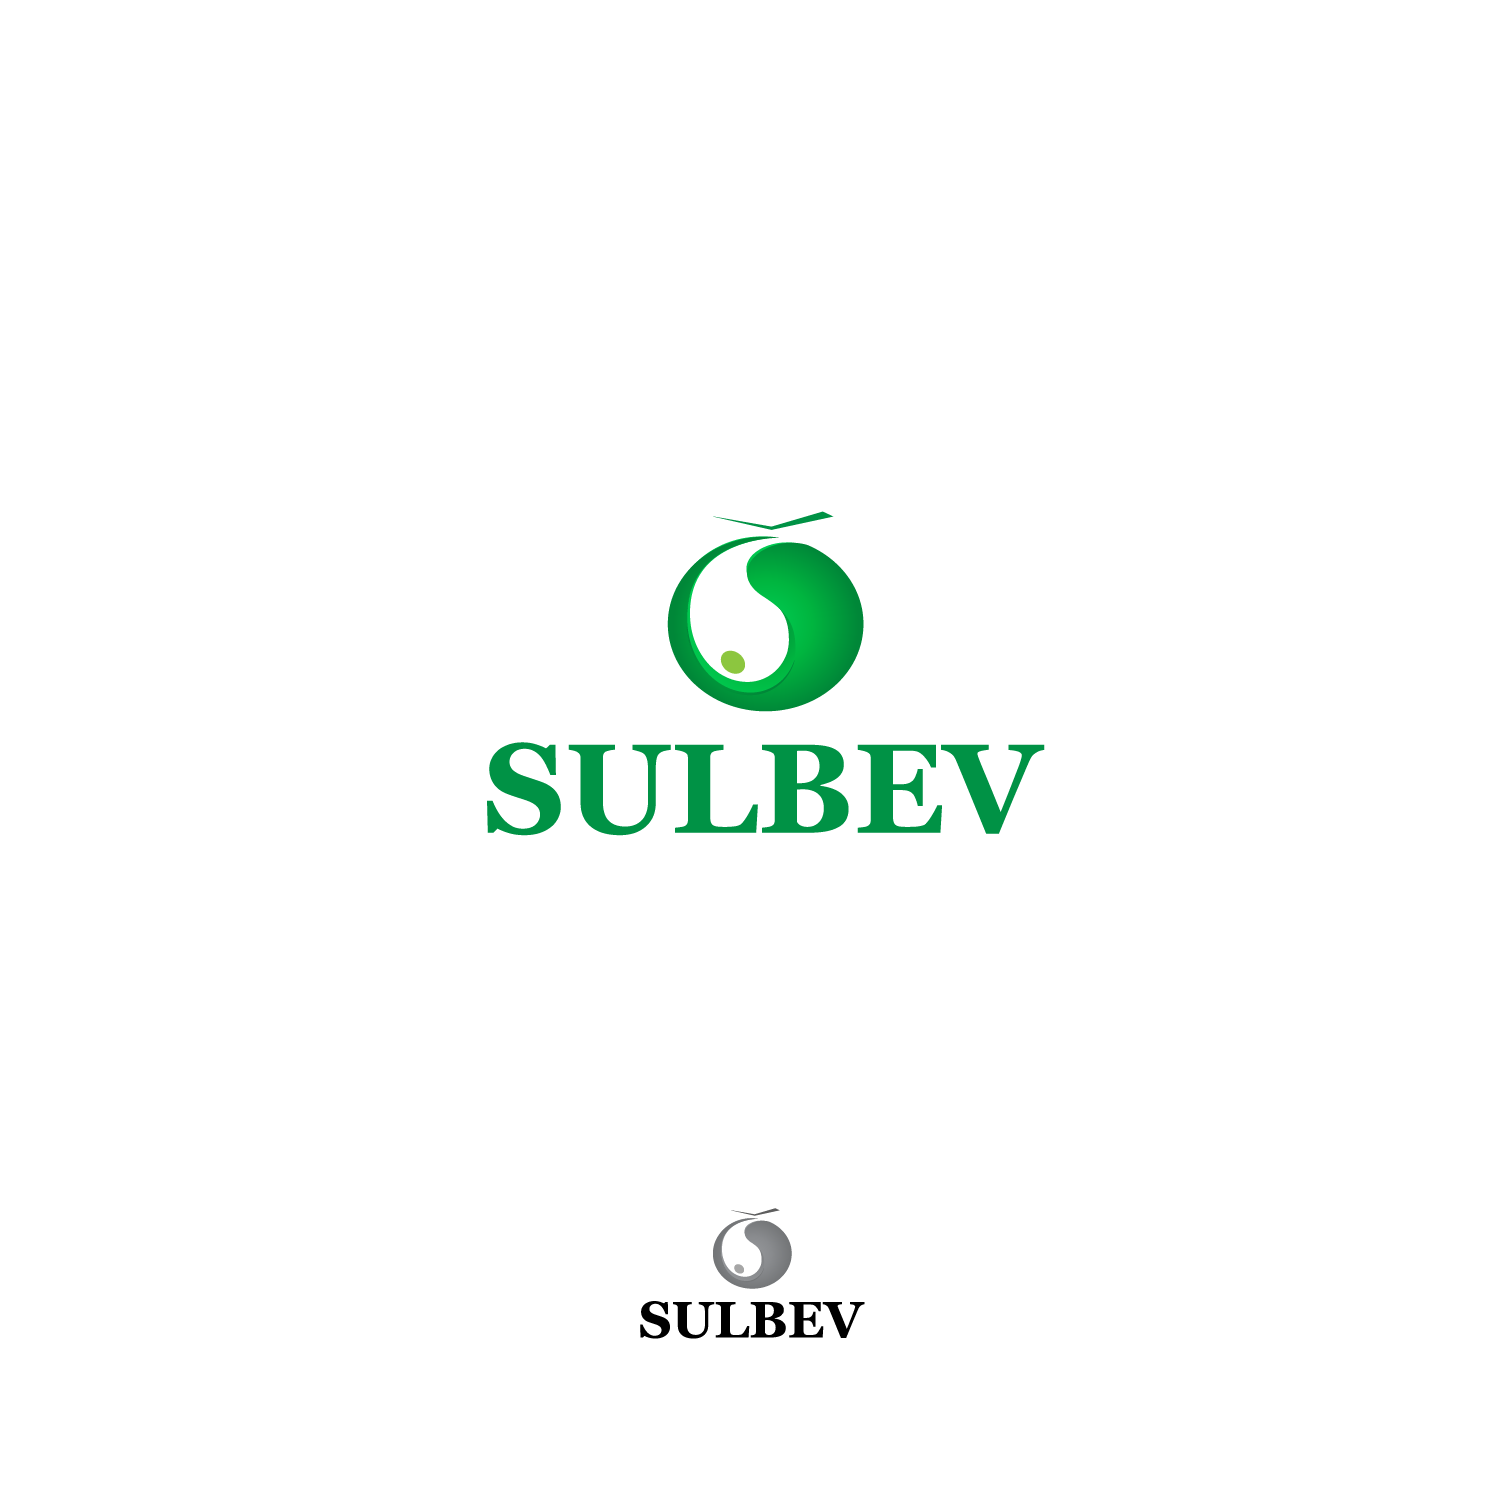 Logo Design by Rommel Tagalo - Entry No. 162 in the Logo Design Contest Creative Logo Design for SULBEV.